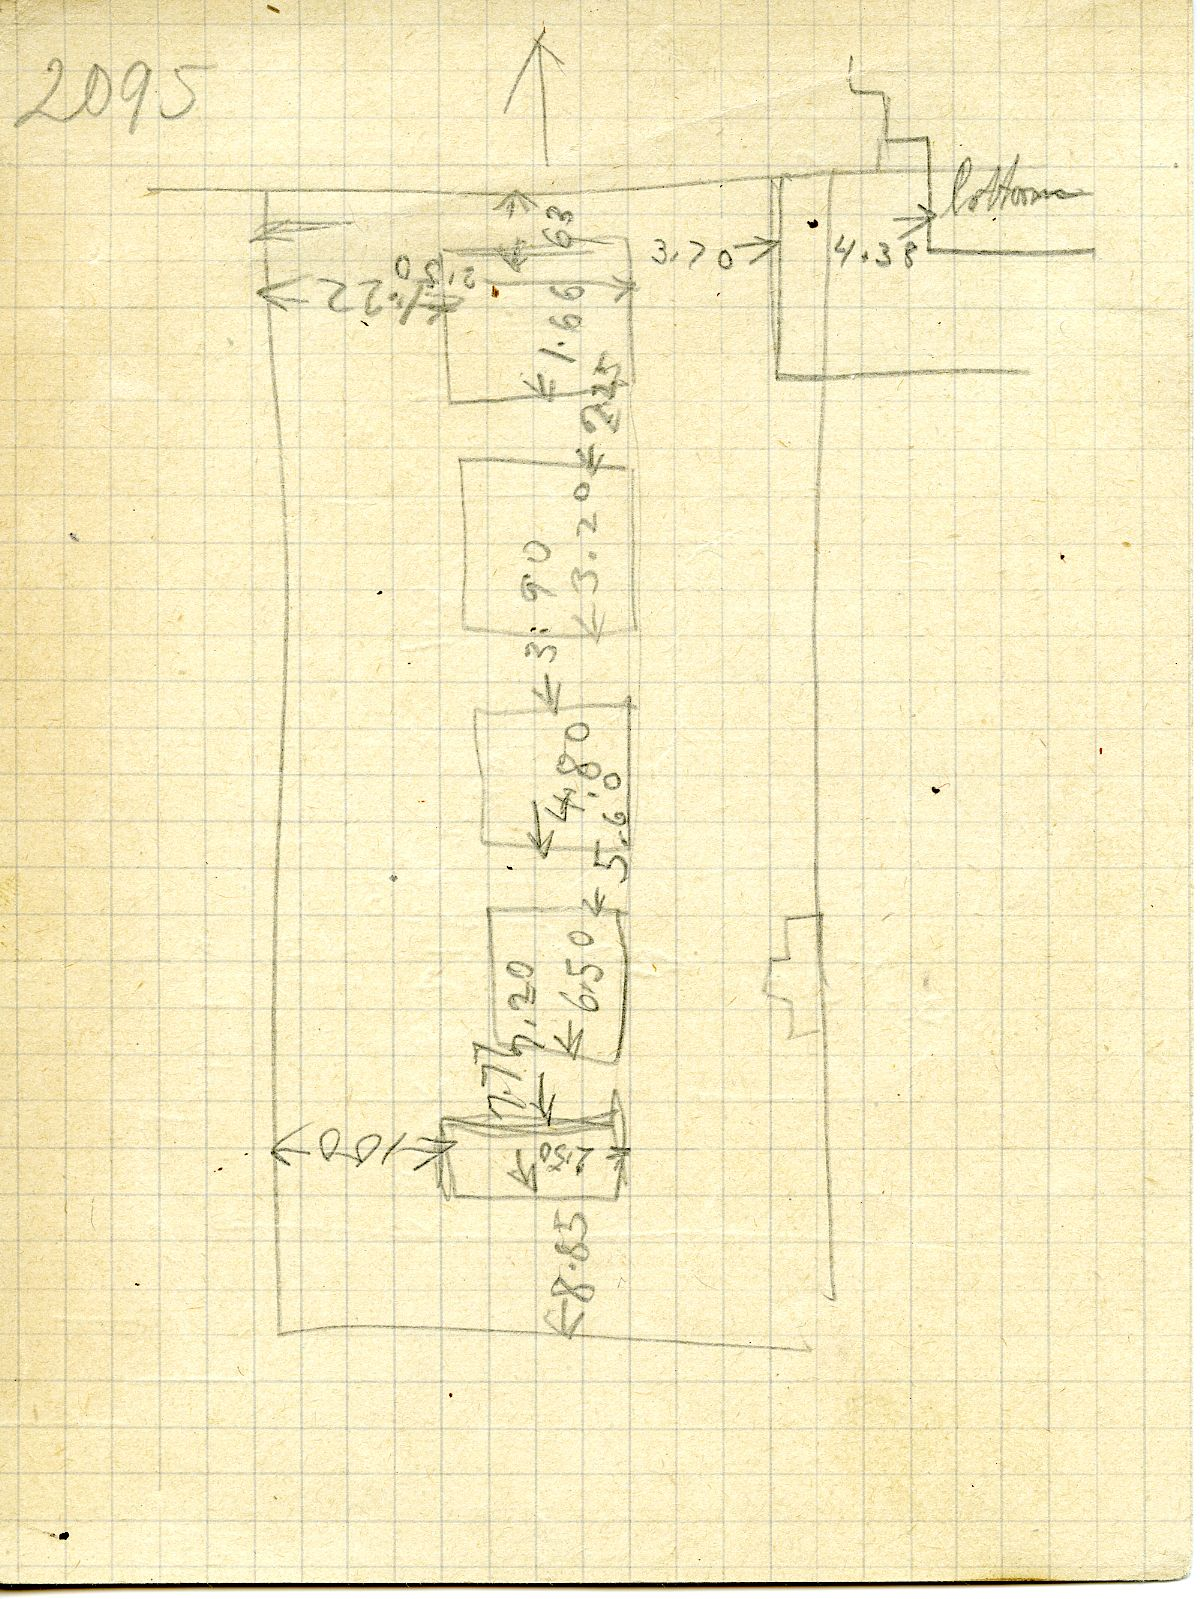 Maps and plans: G 3095, Sketch Plan